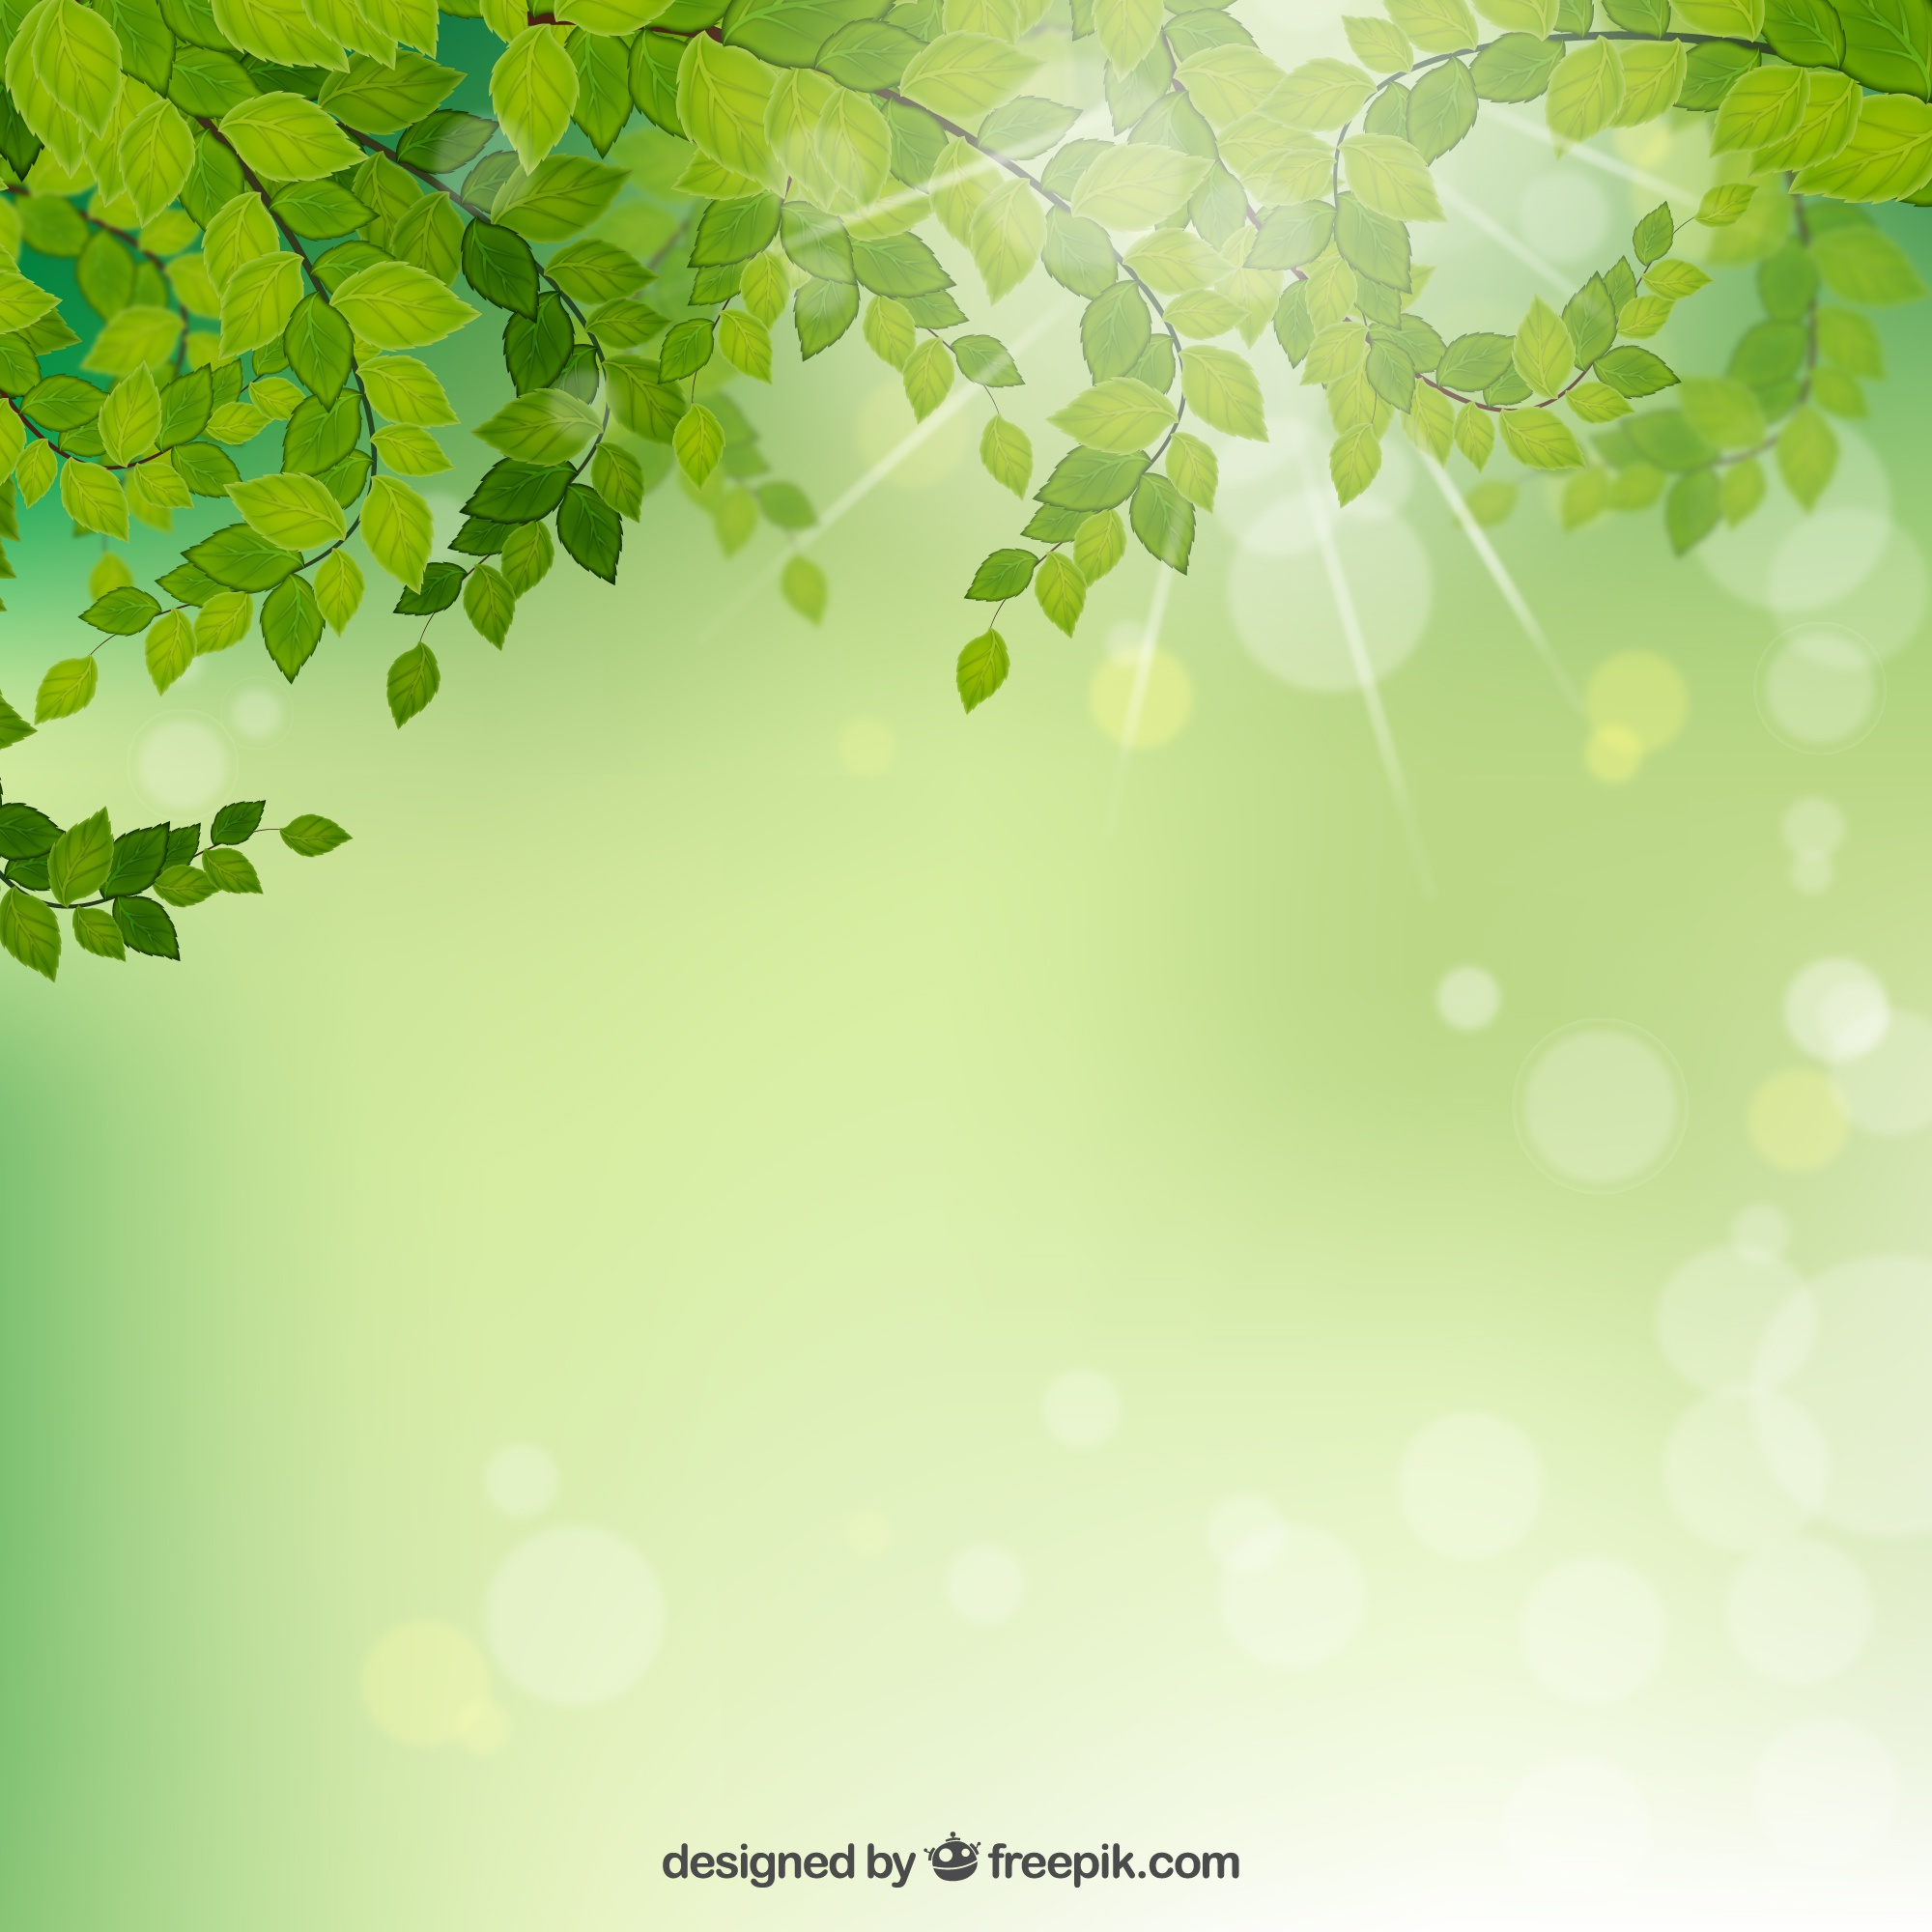 Branches with green leaves background